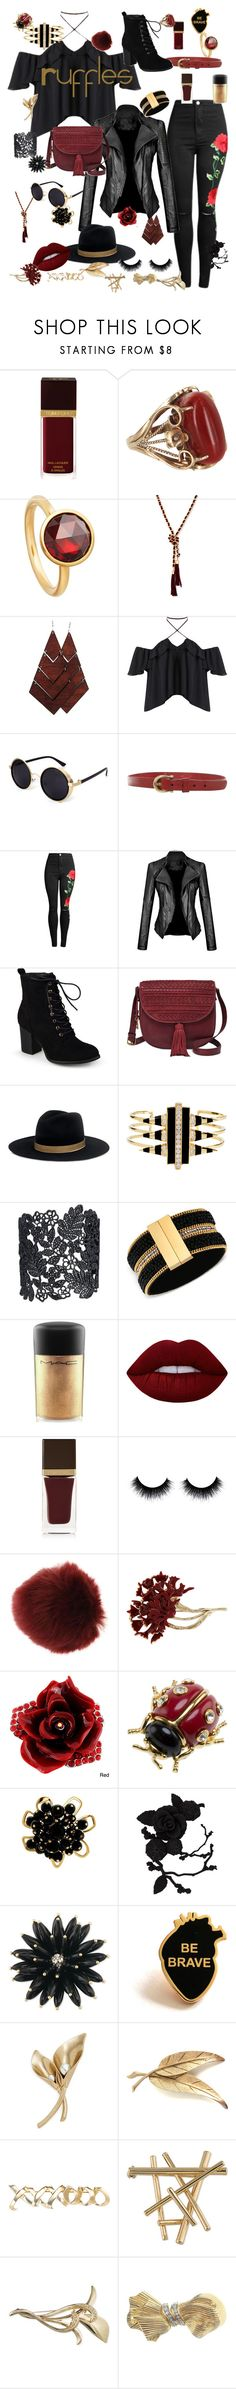 """""""Screw It"""" by hipsterchic100 ❤ liked on Polyvore featuring Tom Ford, Vintage, Astley Clarke, GUESS, Etienne Aigner, Journee Collection, FOSSIL, Janessa Leone, Noir Jewelry and MAC Cosmetics"""